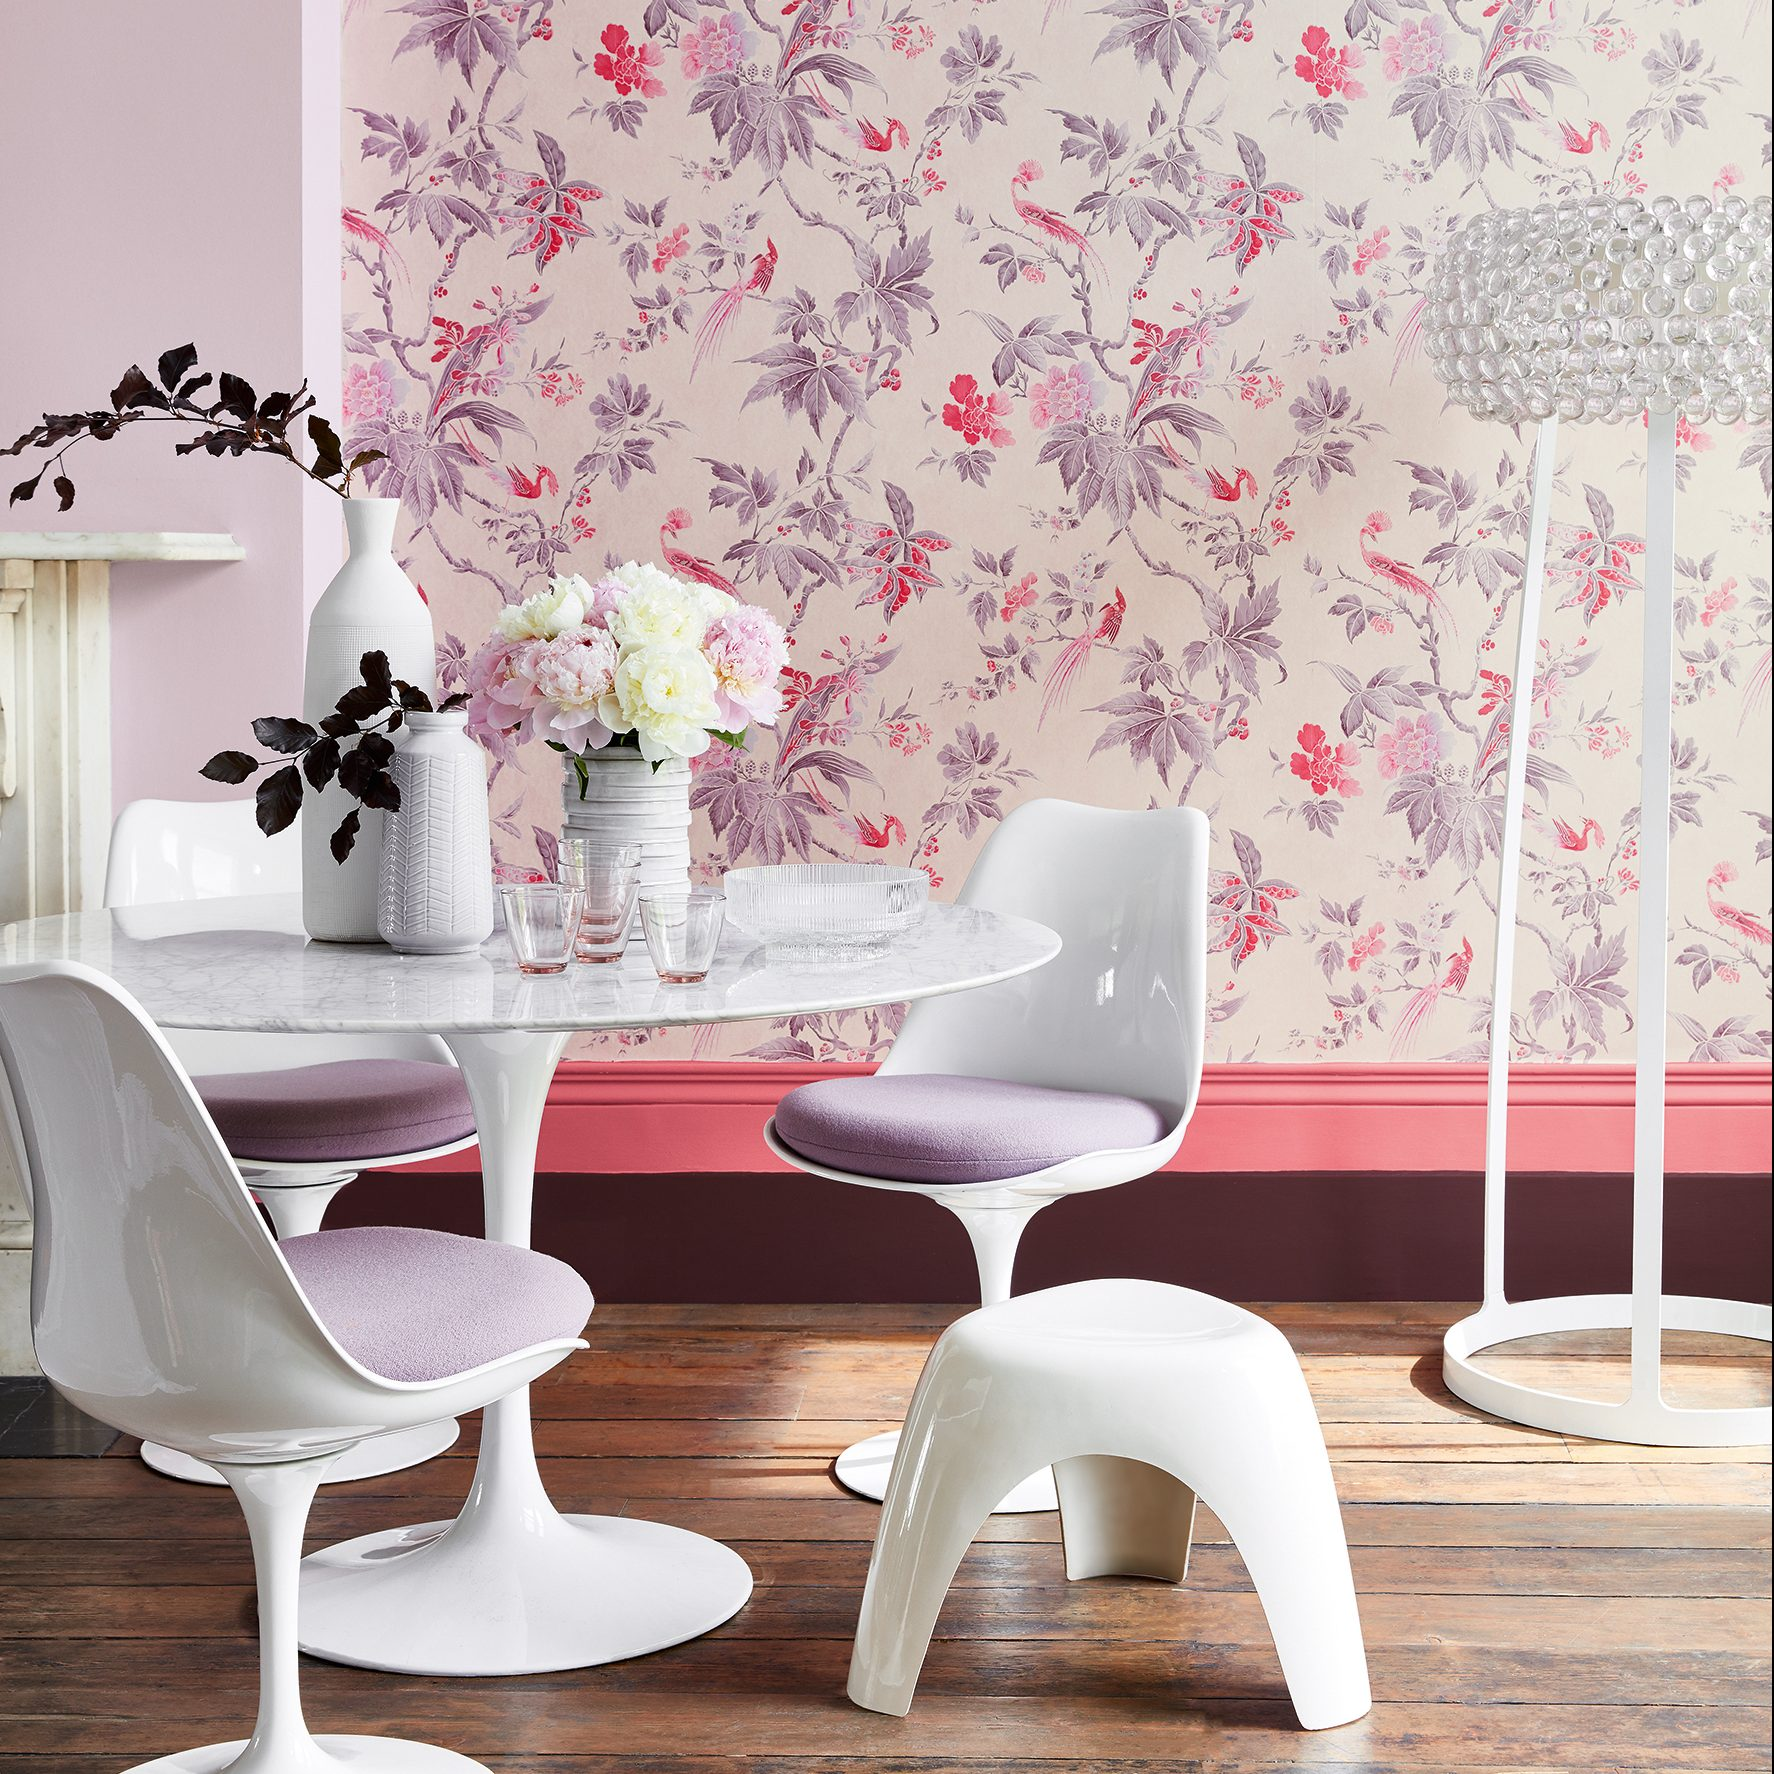 Paradise Pink Revolution wall paper Stafford